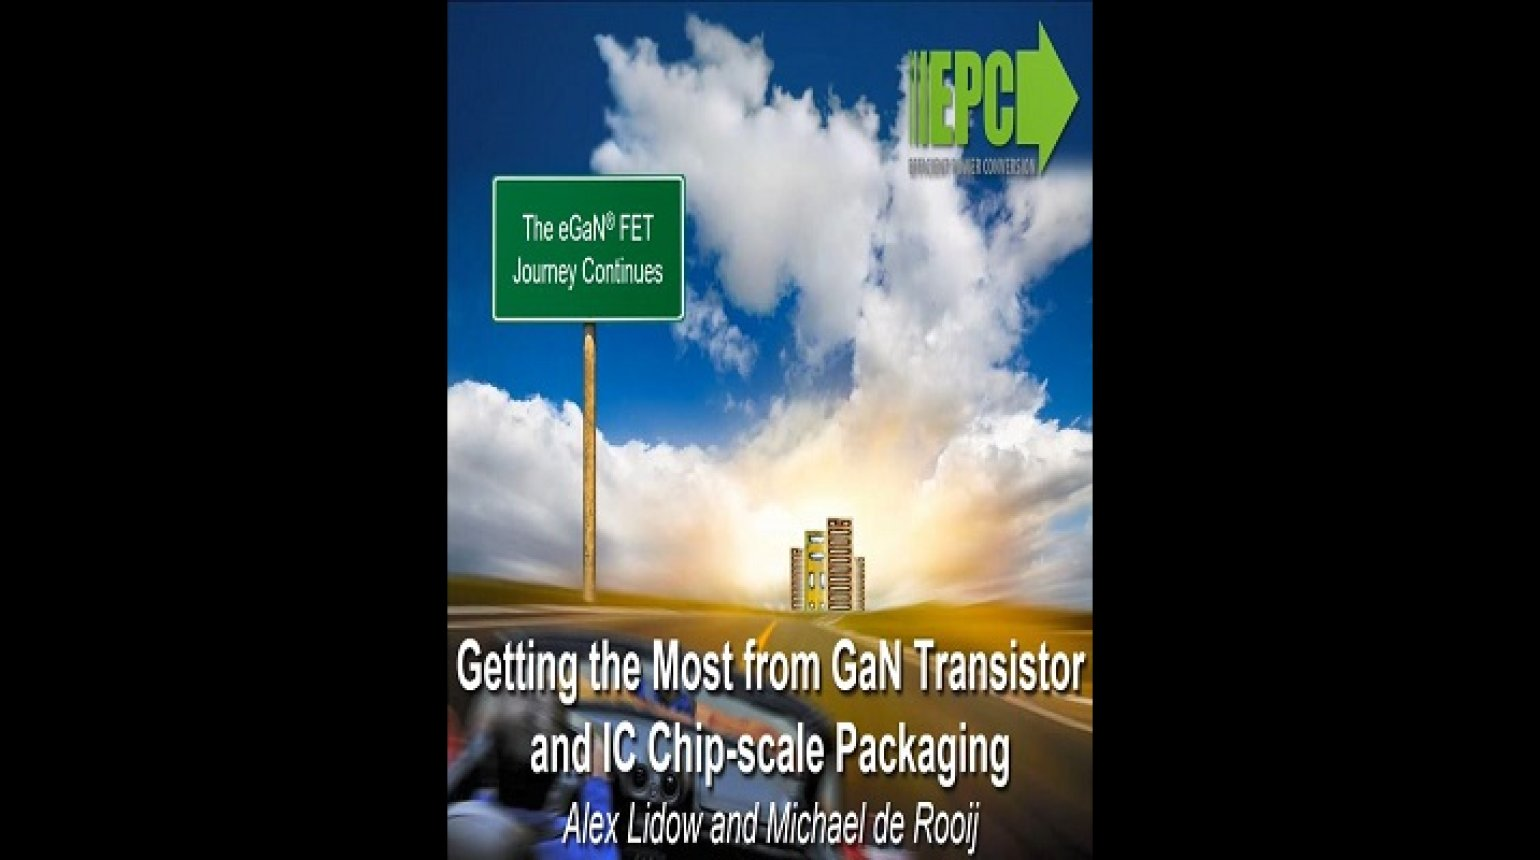 Getting the most from GaN Transistor and IC Chip-scale Packaging Video